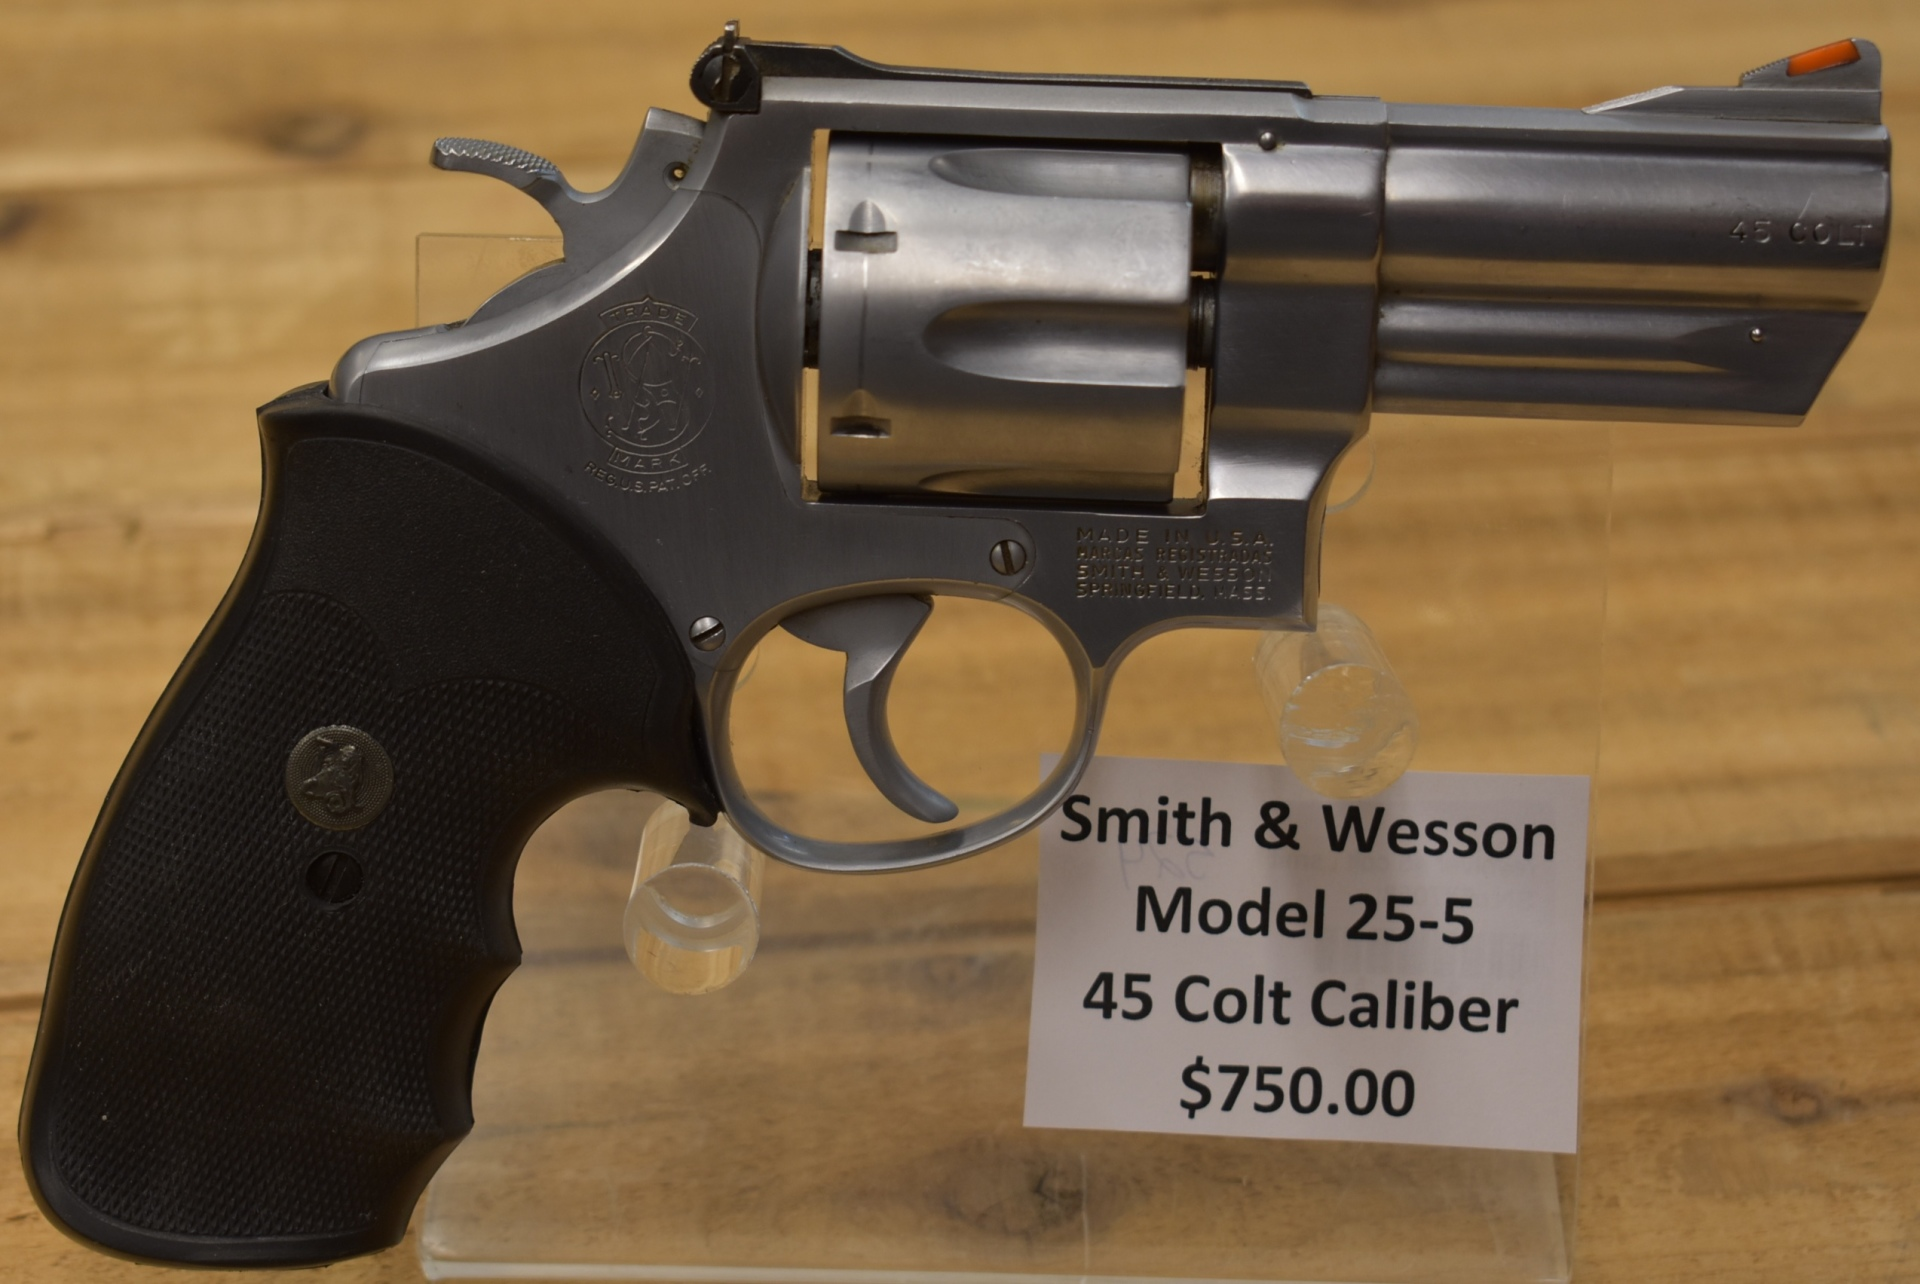 Smith & Wesson Model 25-5